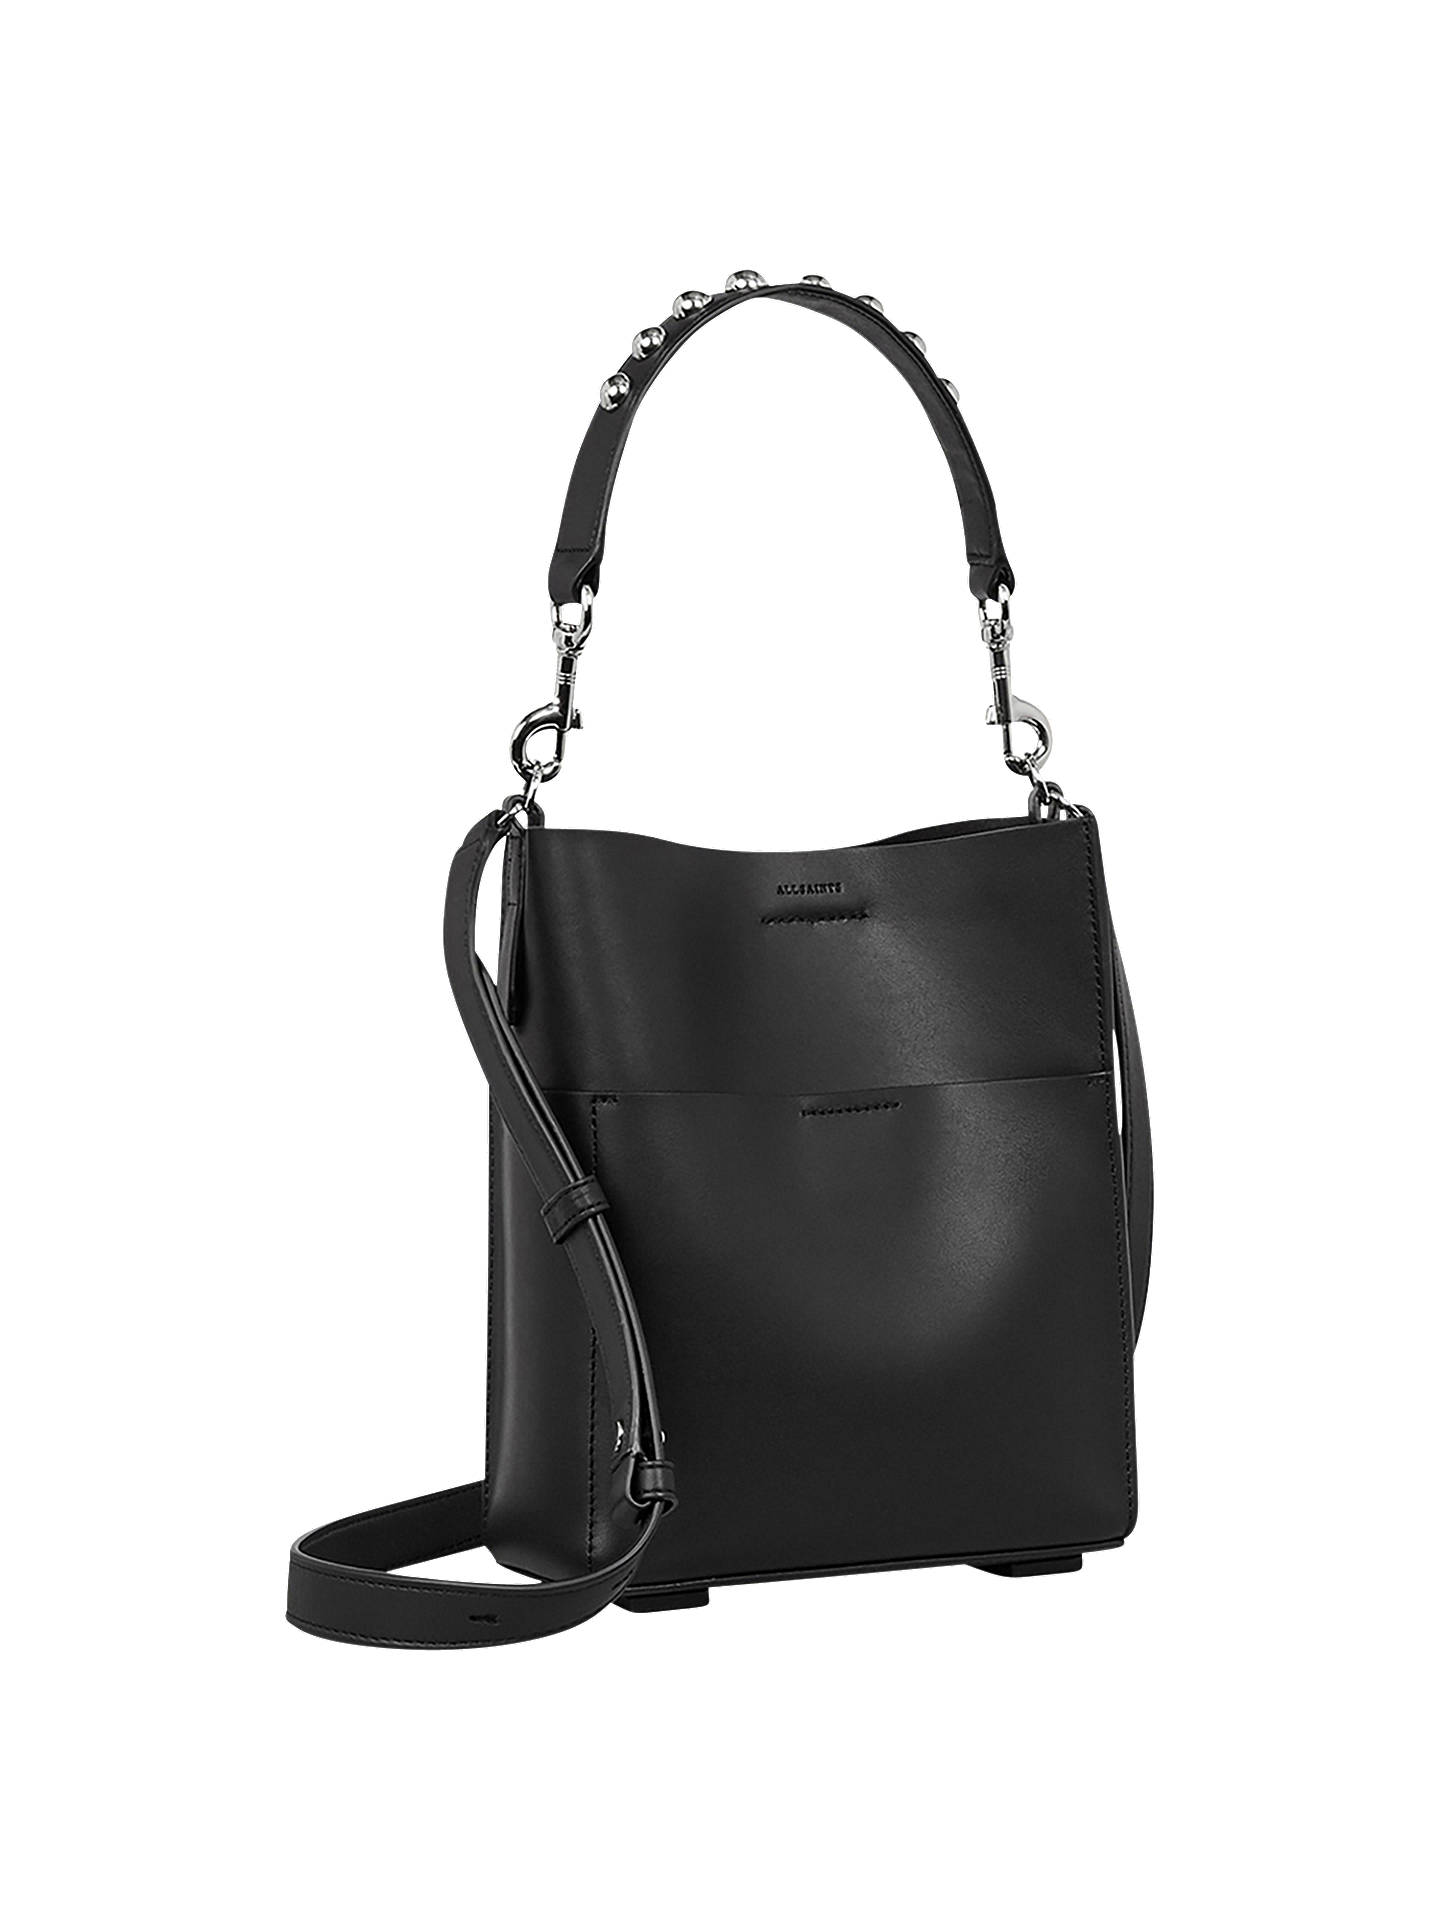 Allsaints Suzi Mini Leather Tote Bag Black Online At Johnlewis